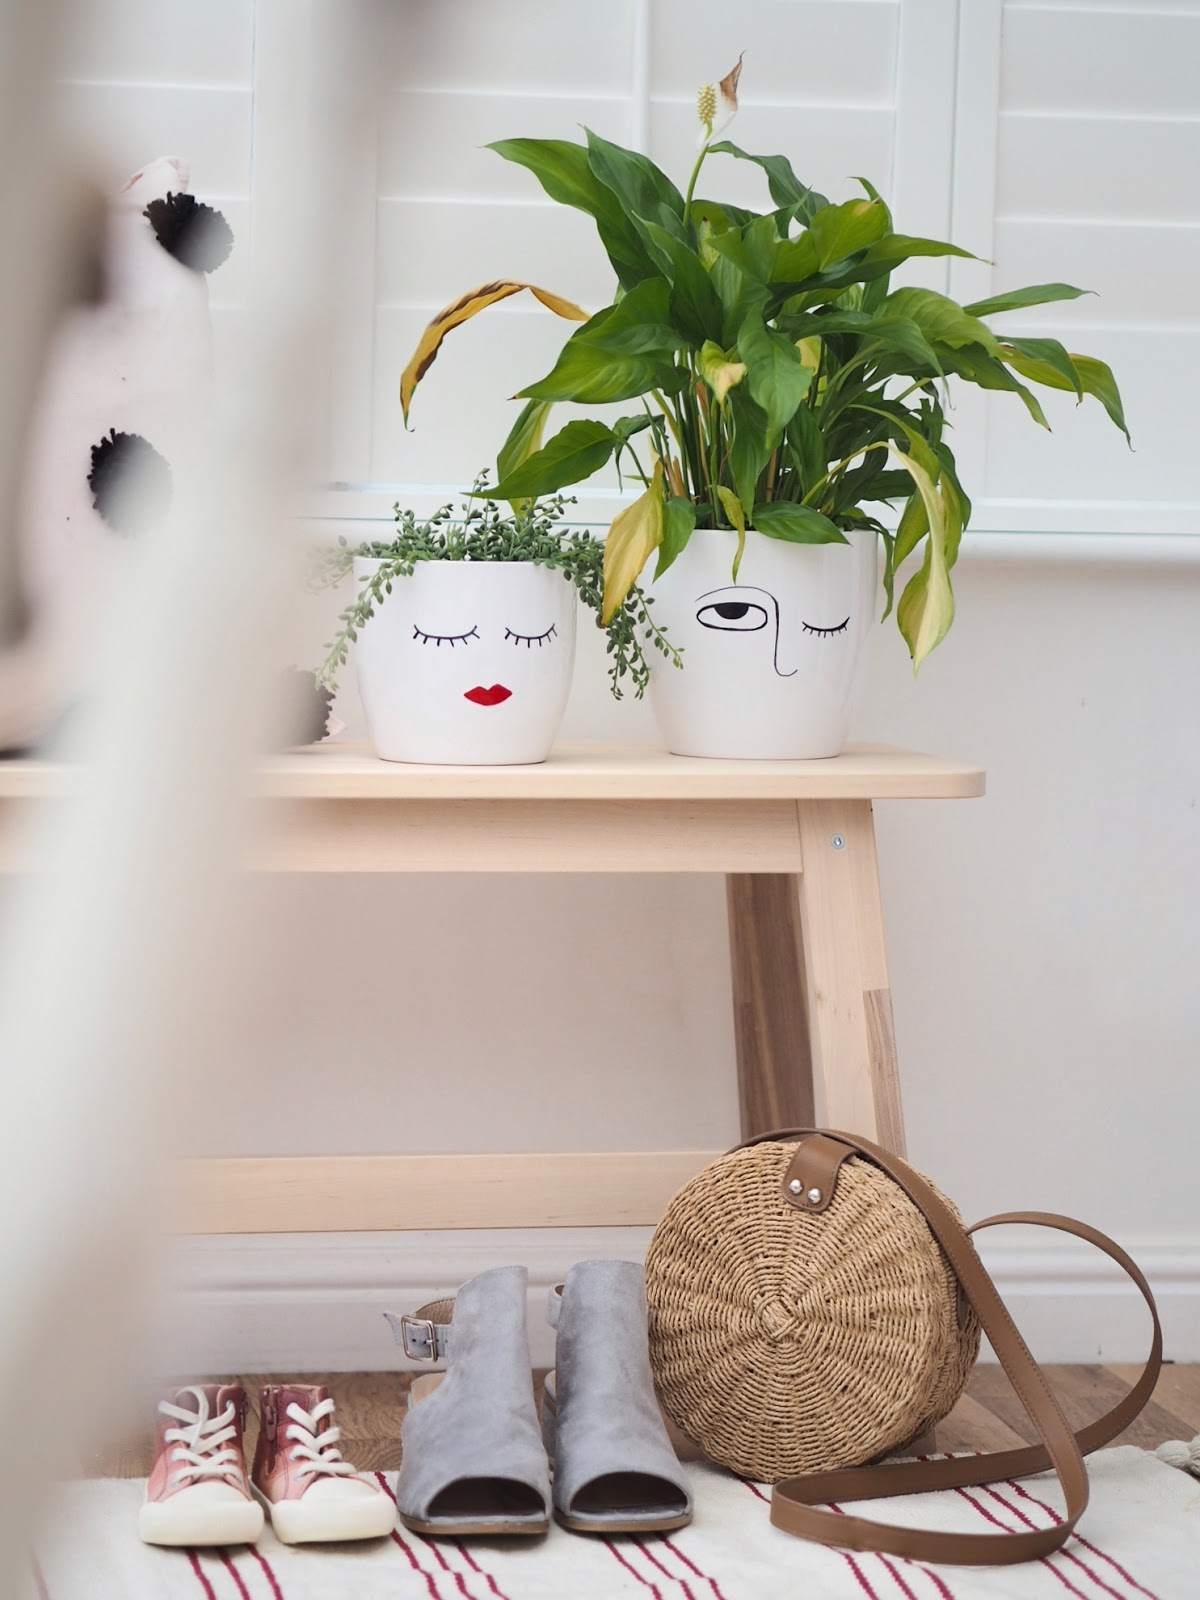 how to draw a design onto a plant pot with a sharpie maker pen to create a boho scandi style pattern. Easy, simple and cheap DIY craft using things you already own.